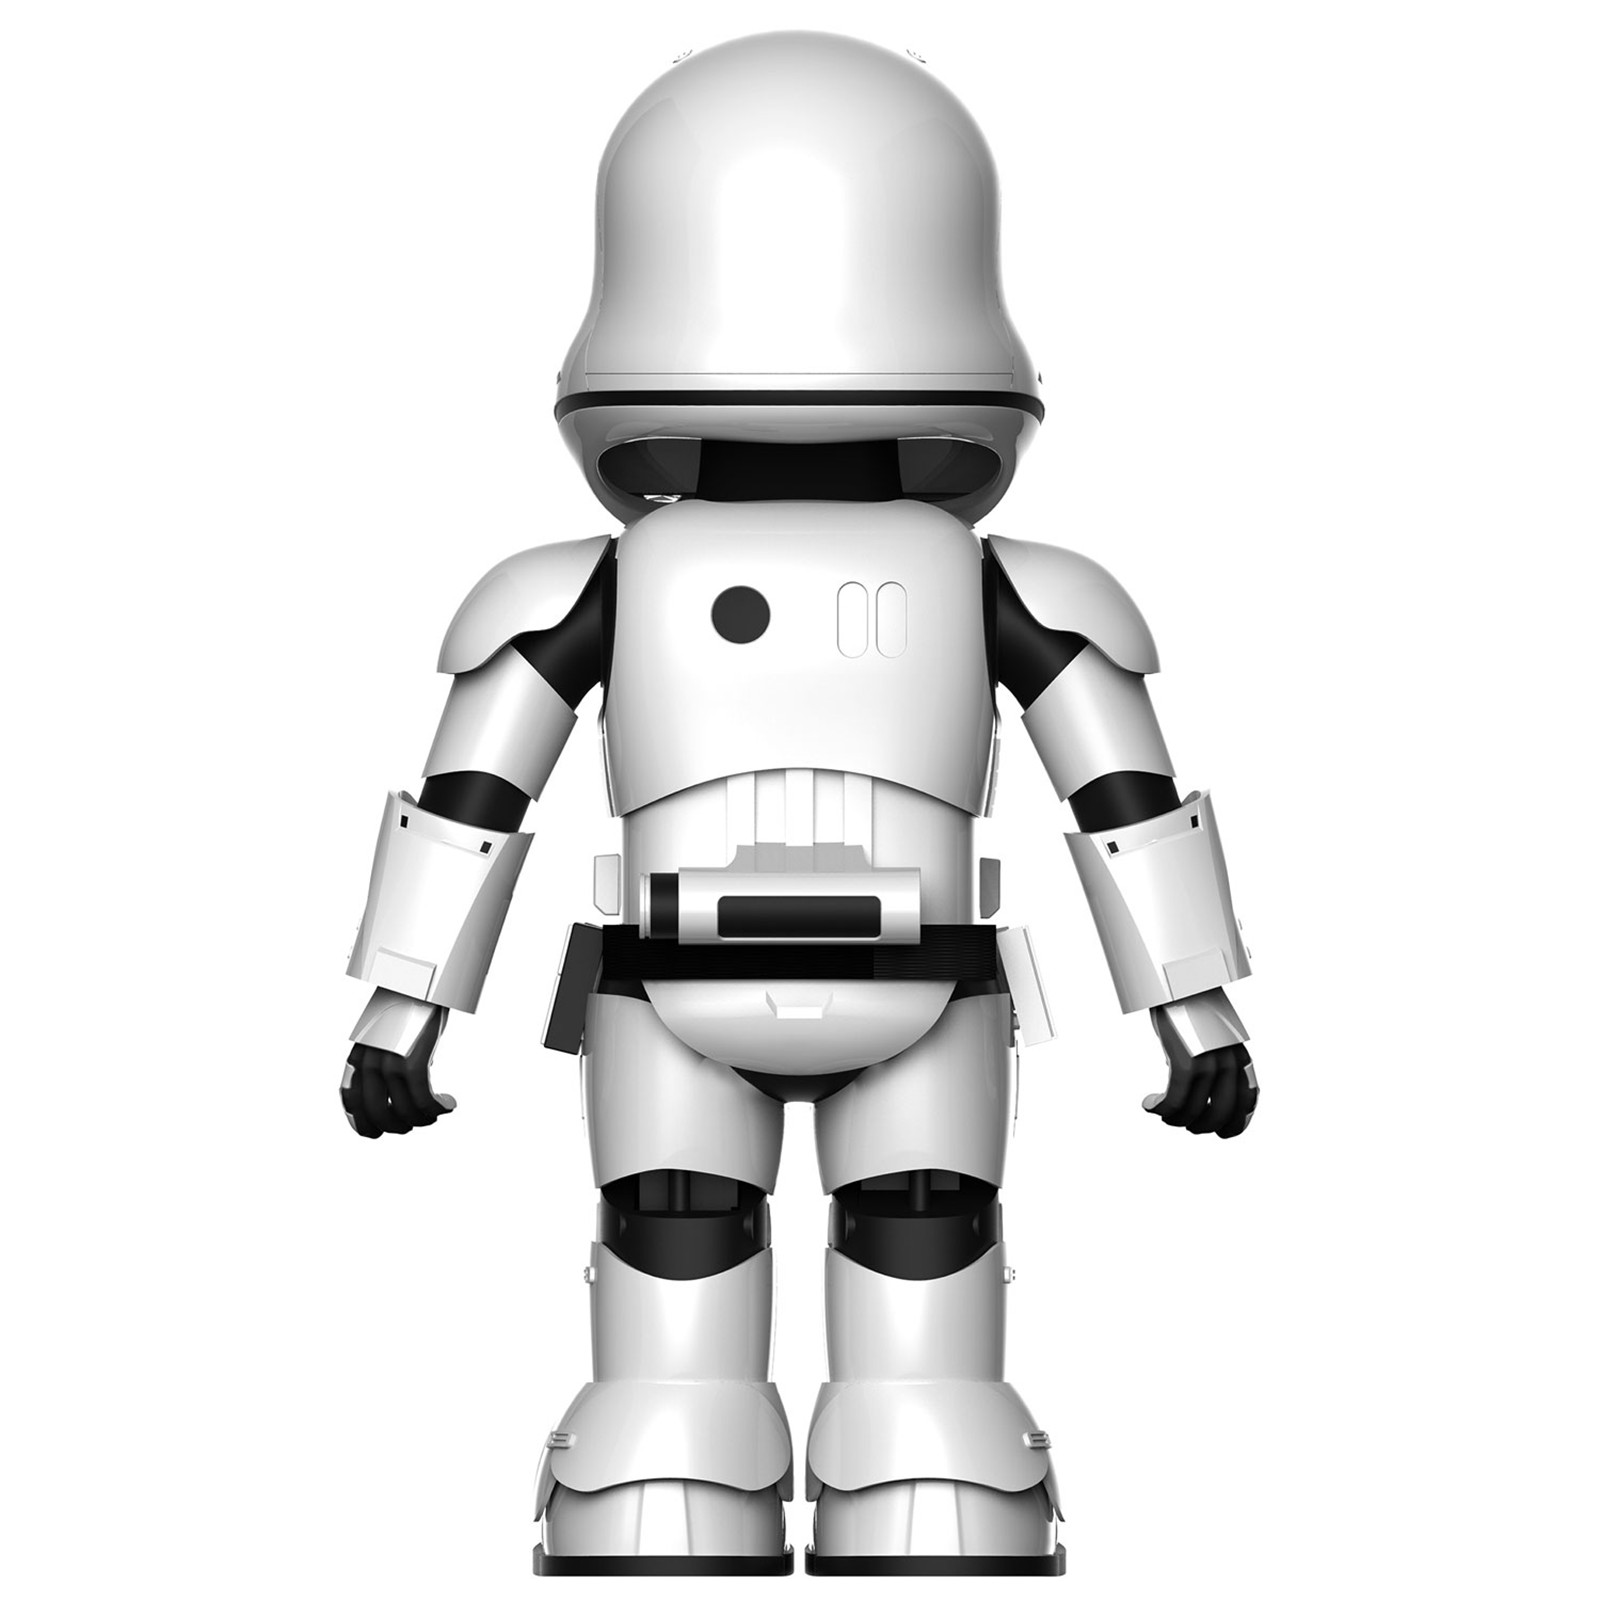 Buy the UBTECH Star Wars Stormtrooper Robot App-Controlled, Voice